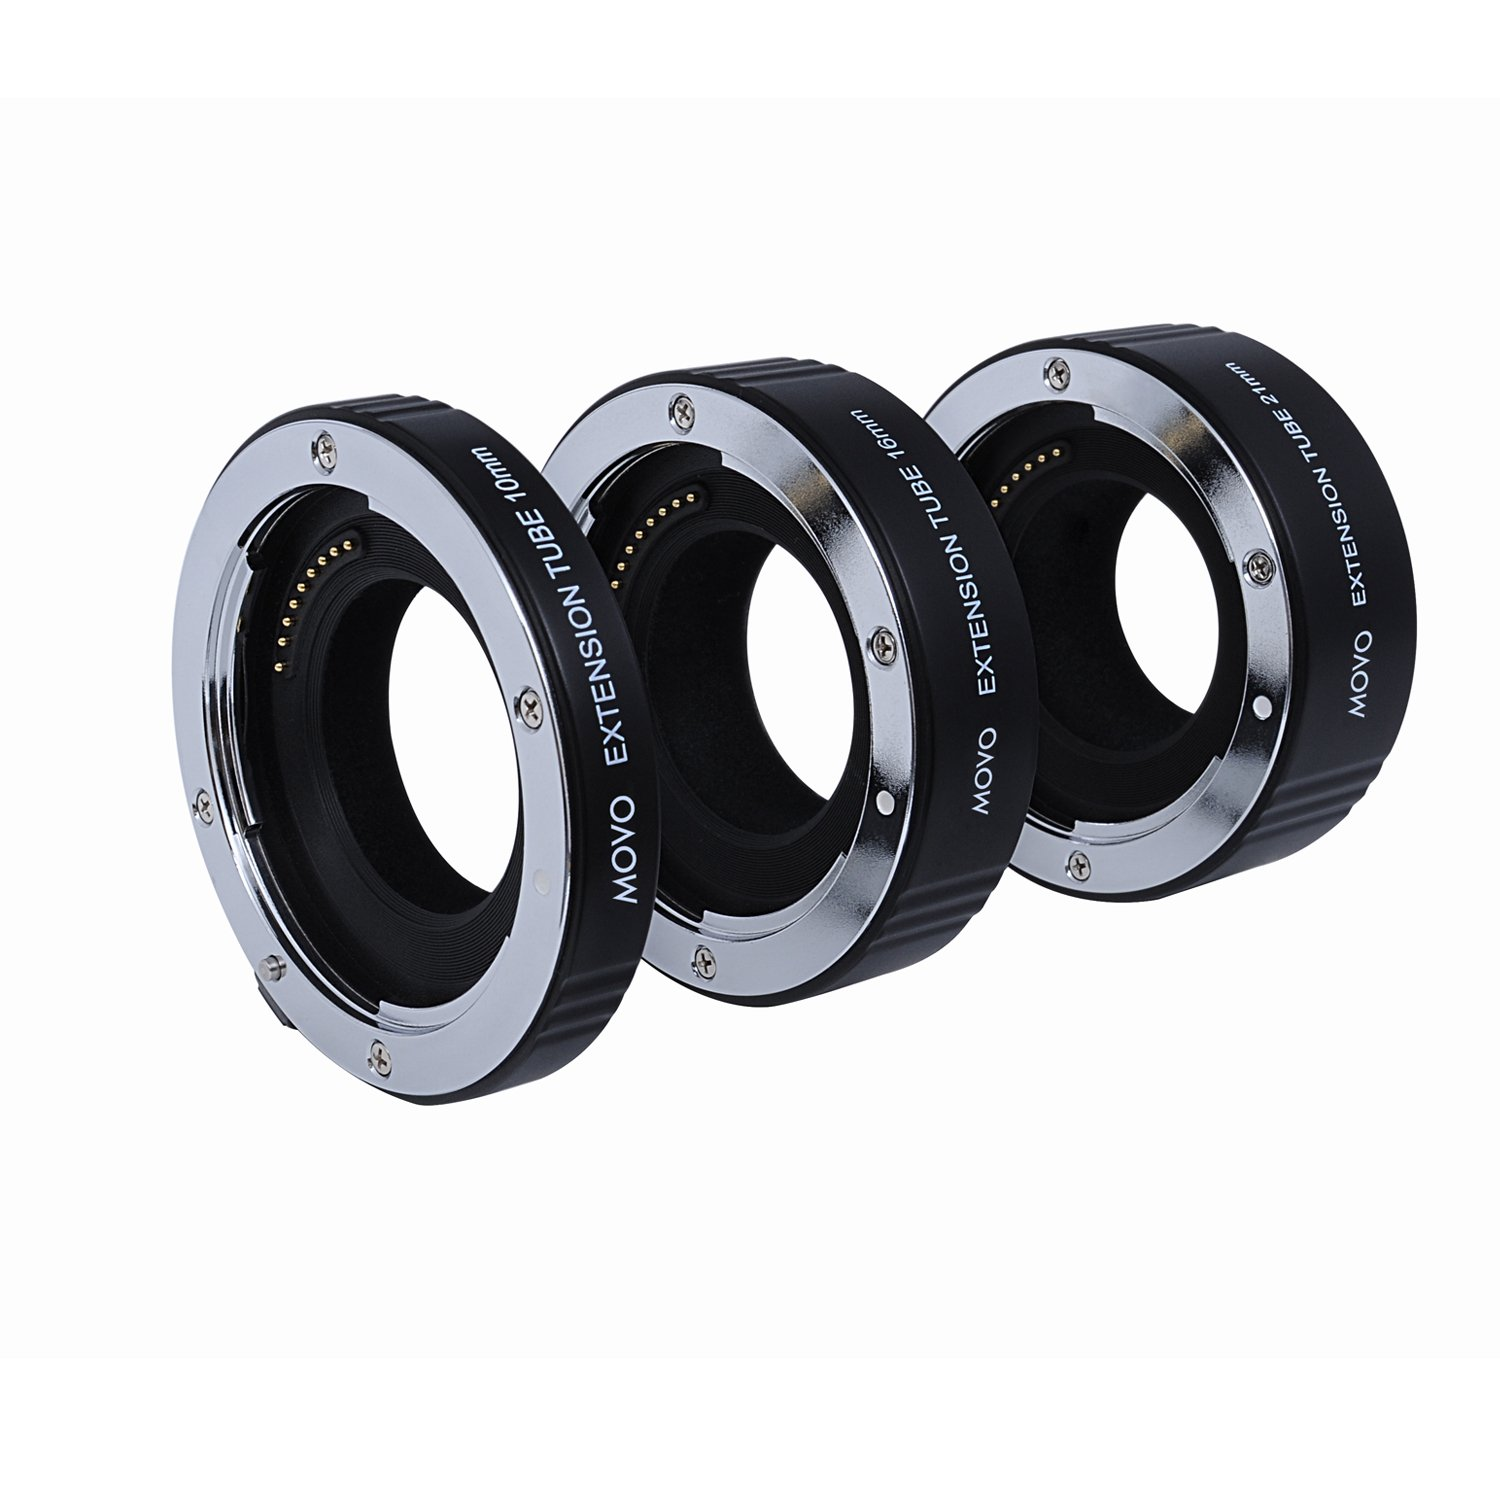 Movo Photo AF Macro Extension Tube Set for Canon EOS-M, M2, M3, M10 Mirrorless Camera System with 10mm, 16mm & 21mm Tubes (Metal Mount) by Movo